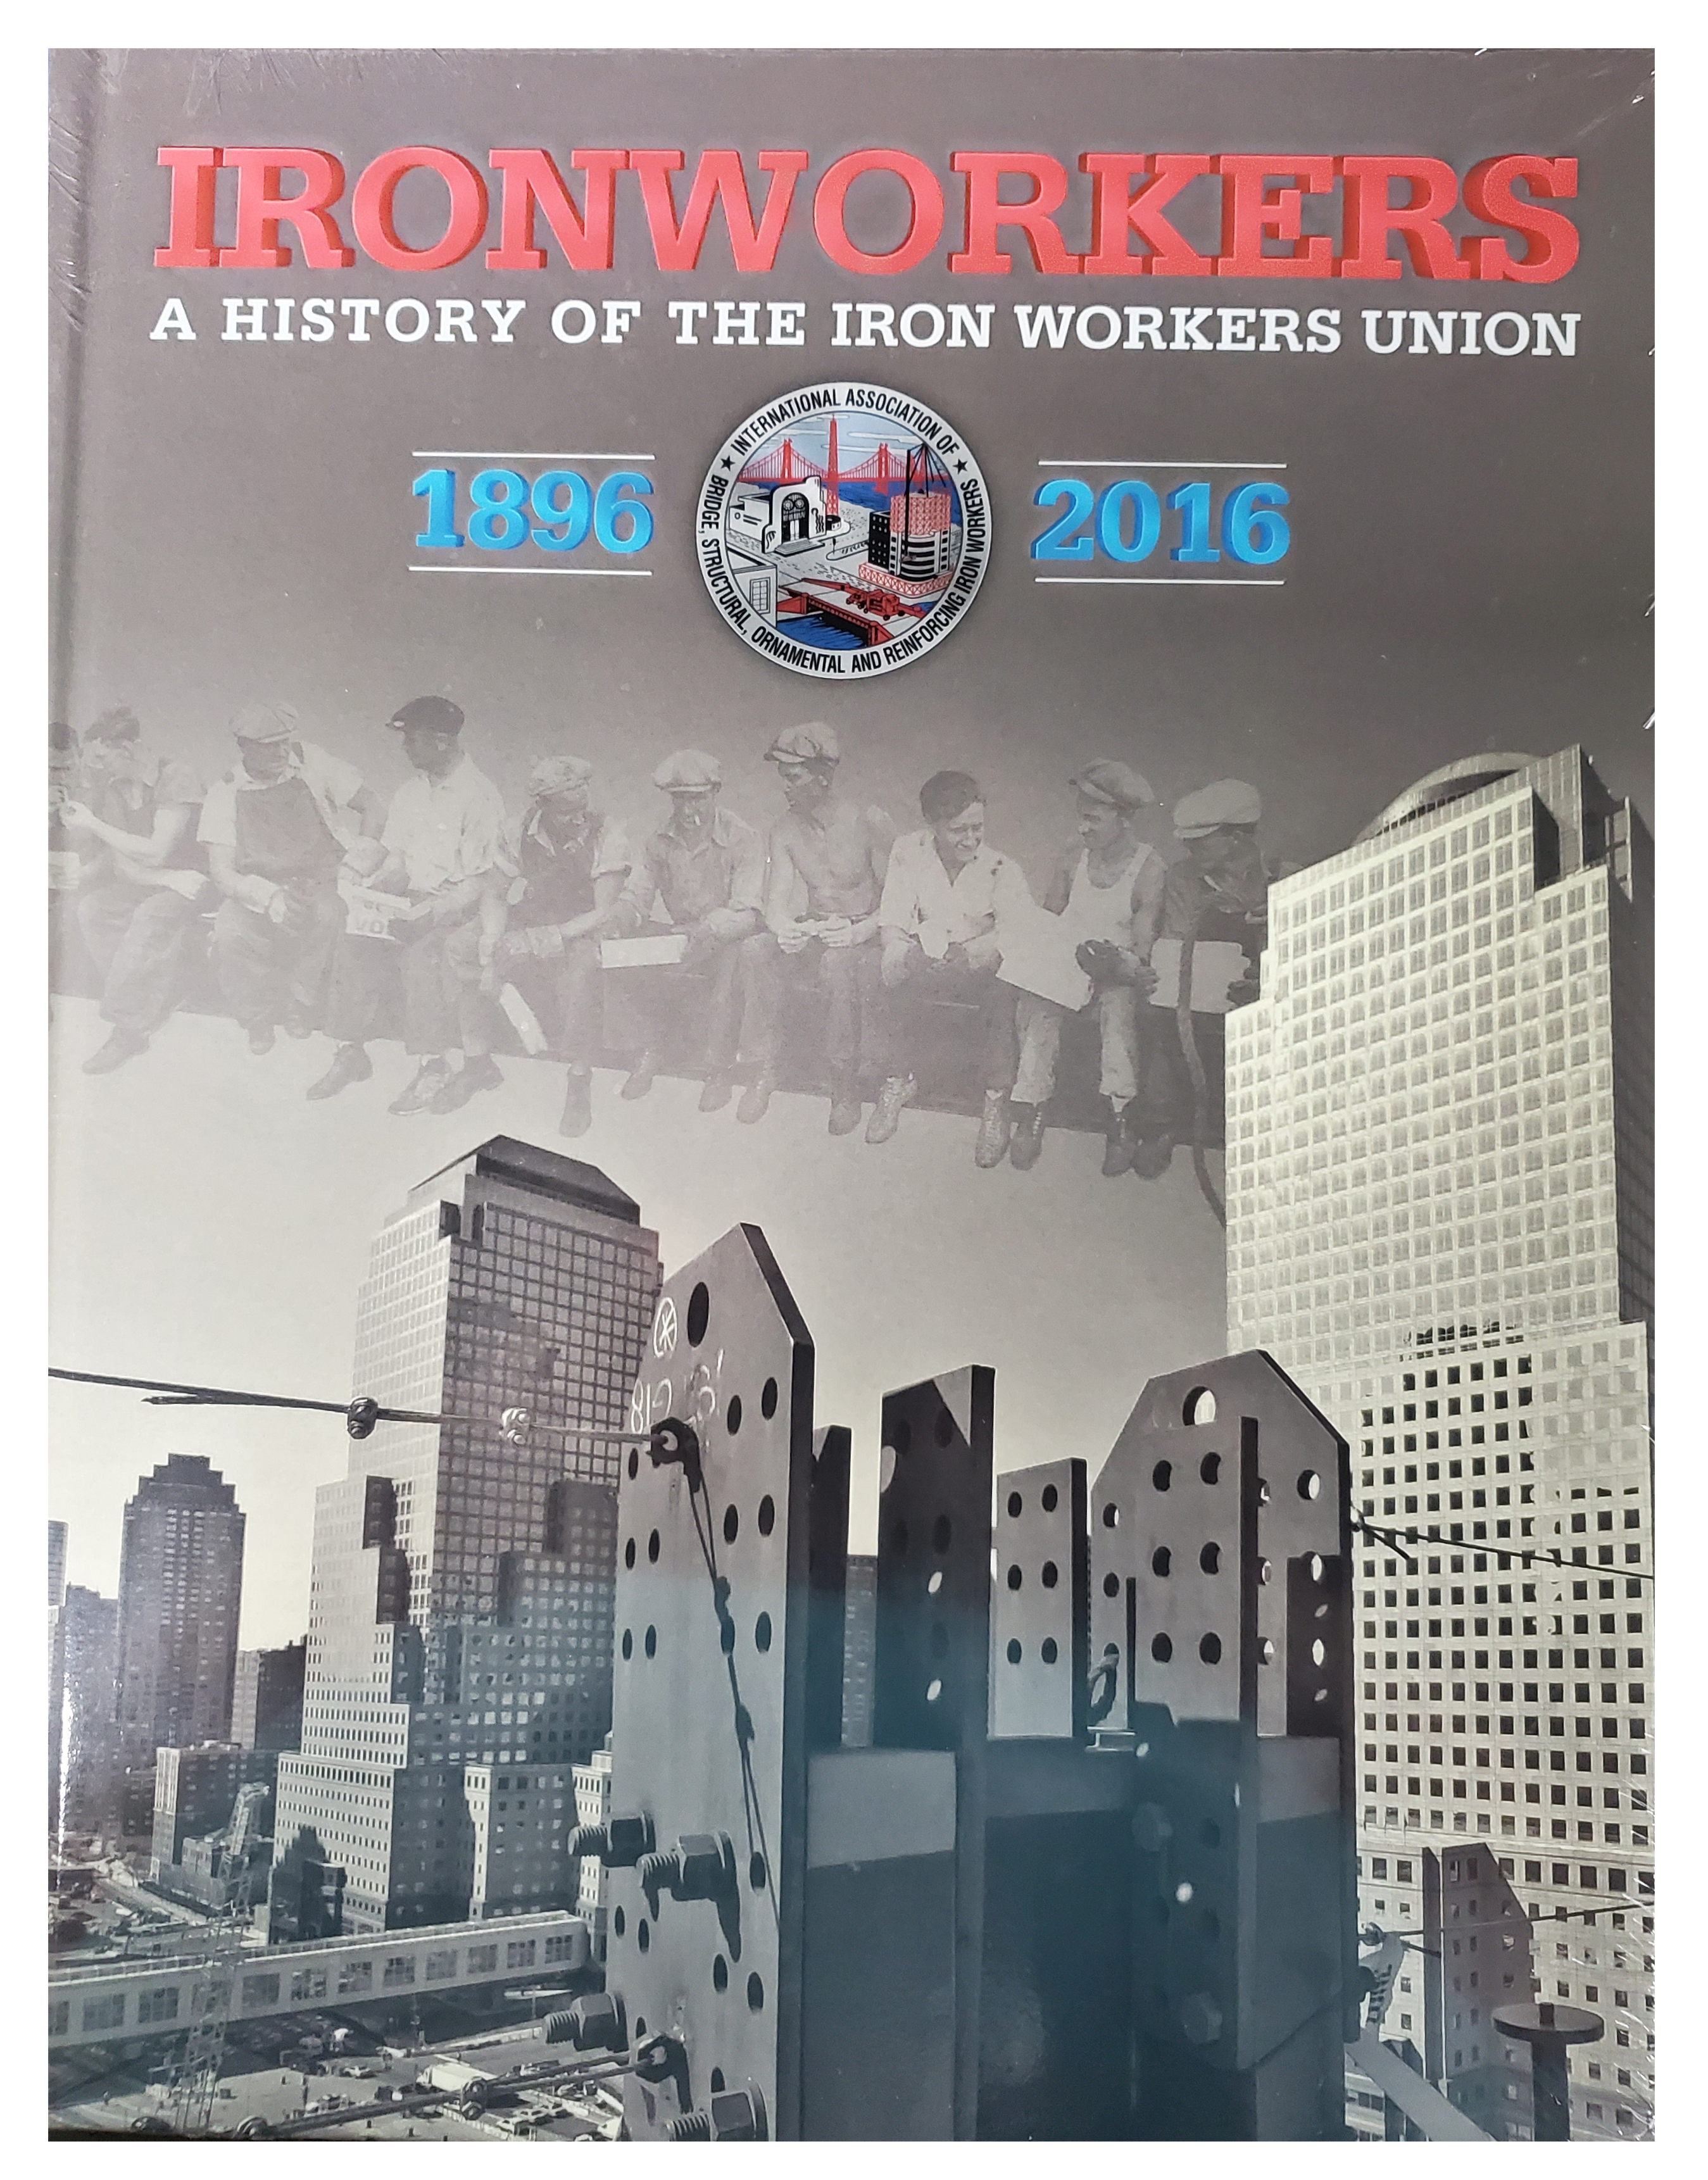 Iron Workers History Book